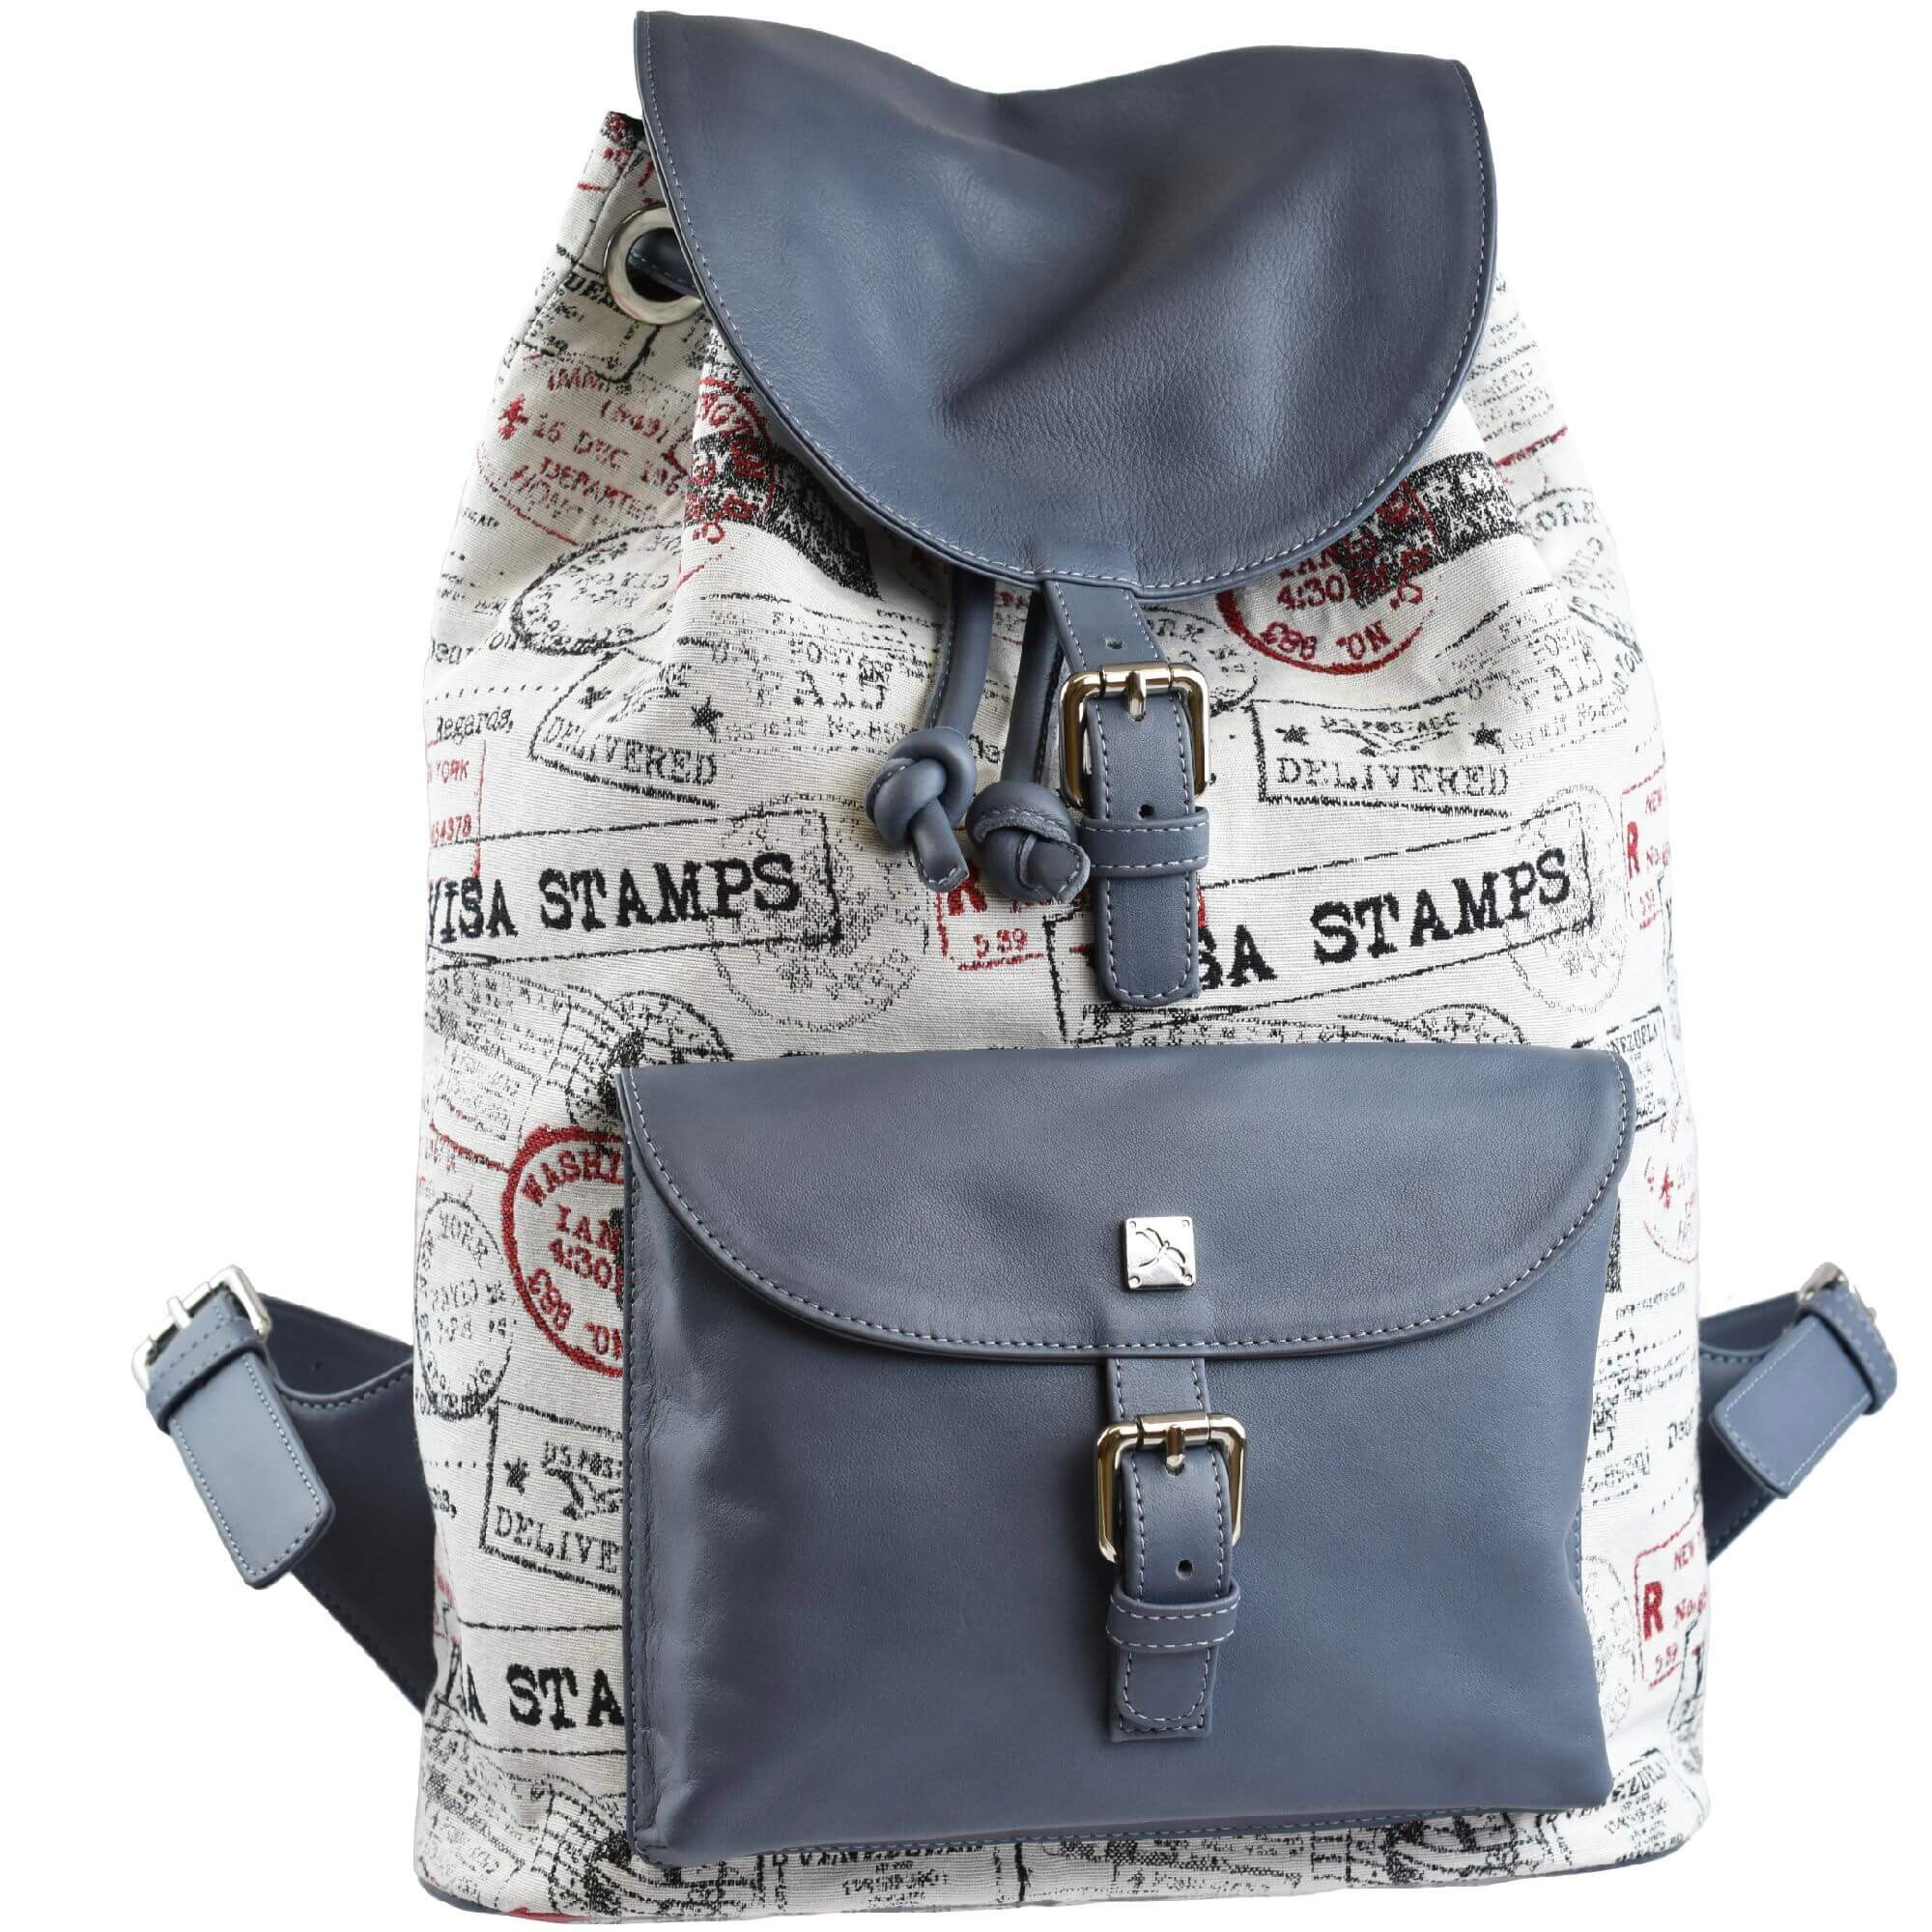 Jacquard and leather backpack. Backpacks | TARA´S